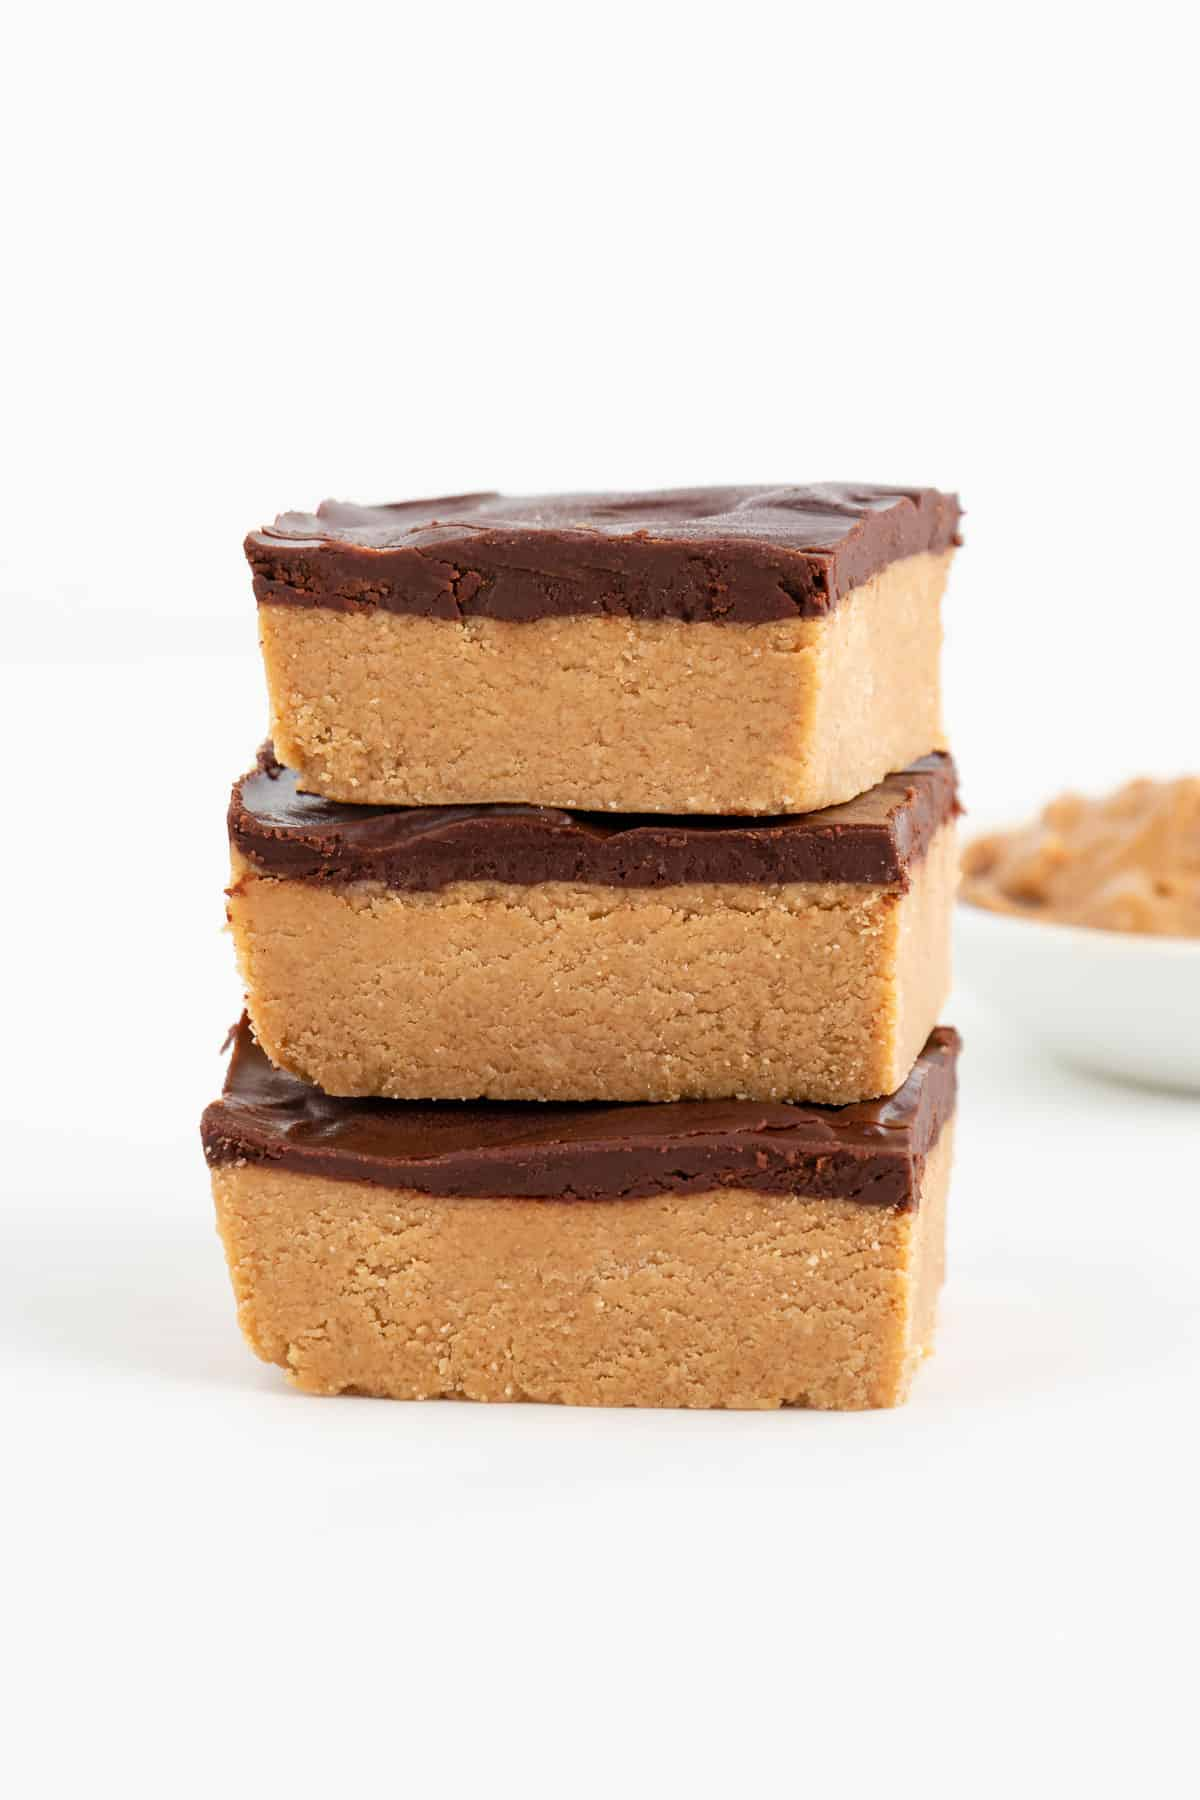 three no bake chocolate peanut butter bars stacked in front of a bowl filled with peanut butter